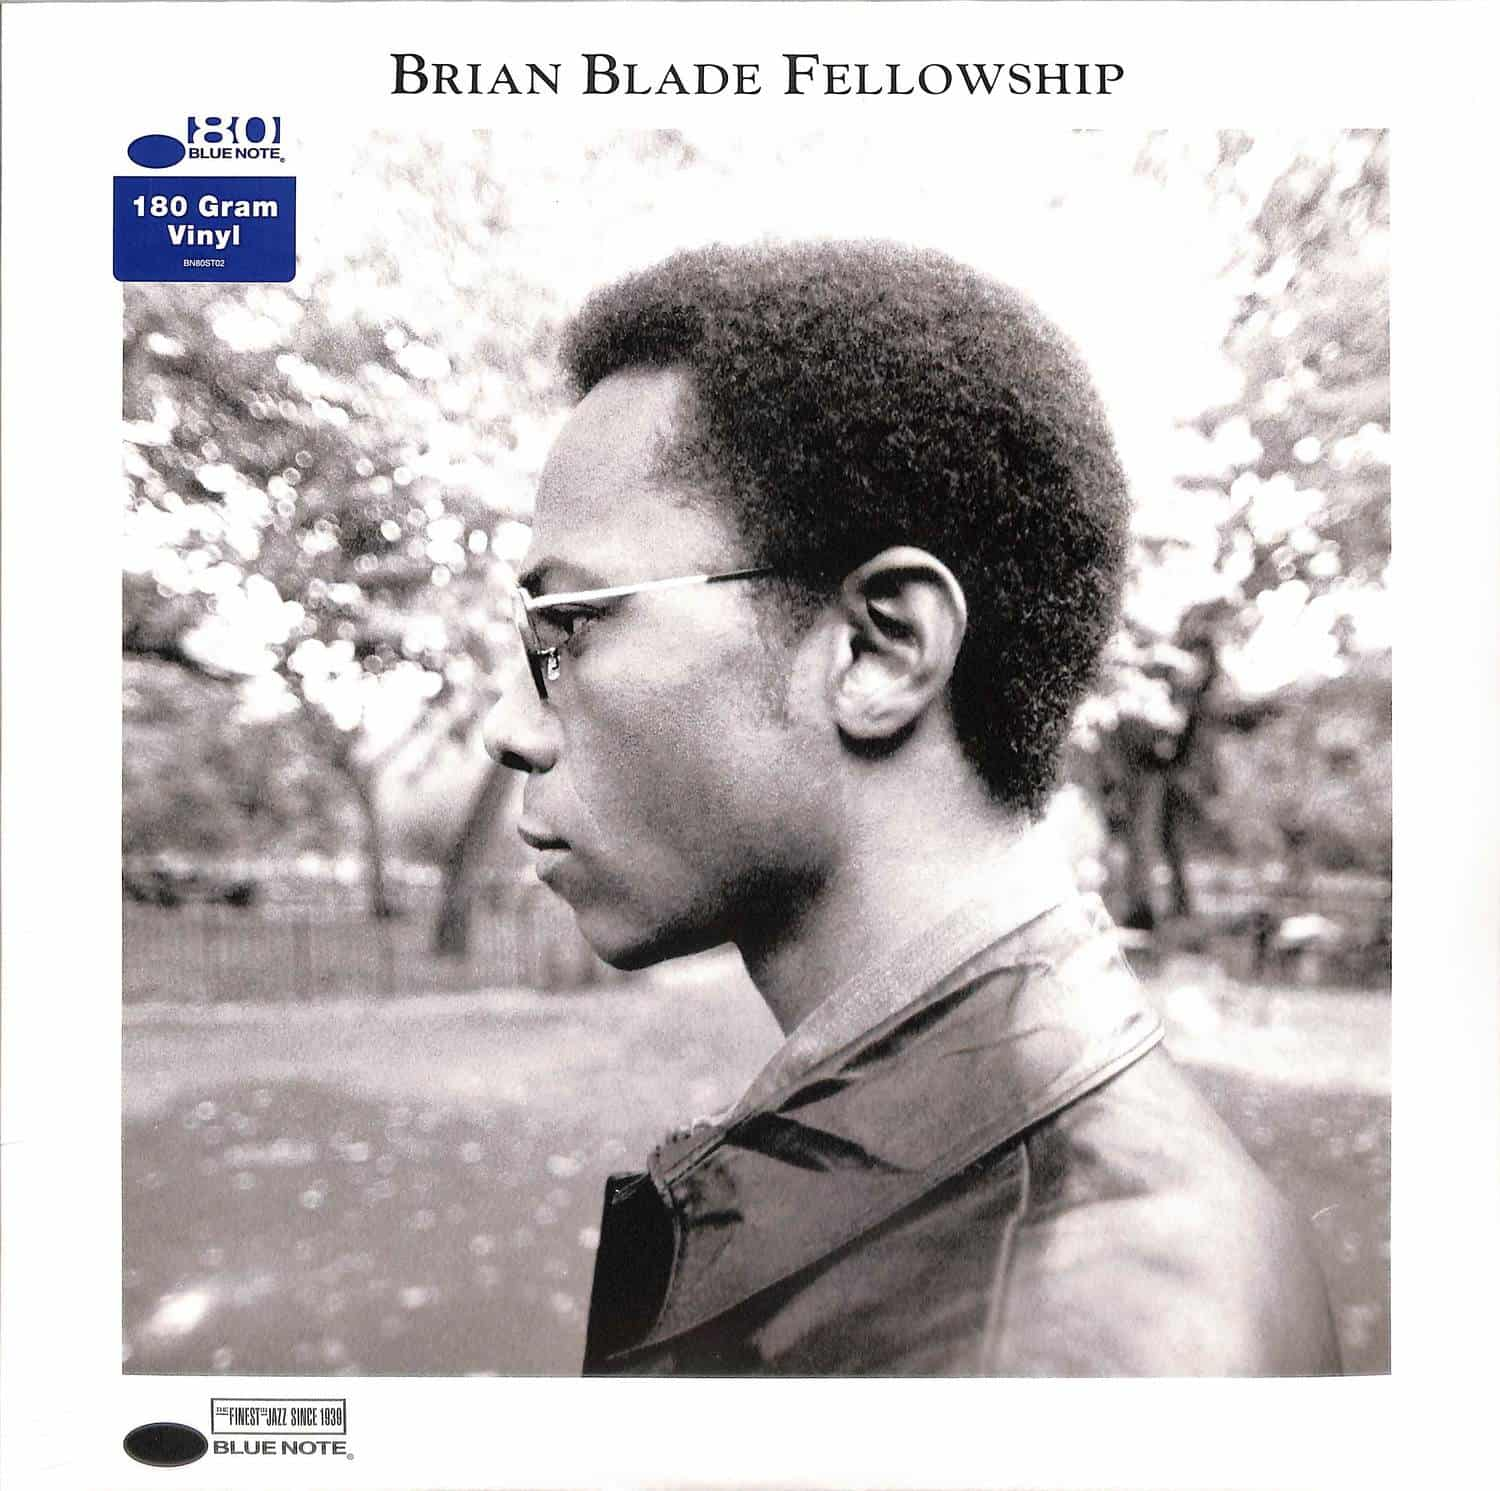 Brian Blade Fellowship - BRIAN BLADE FELLOWSHIP